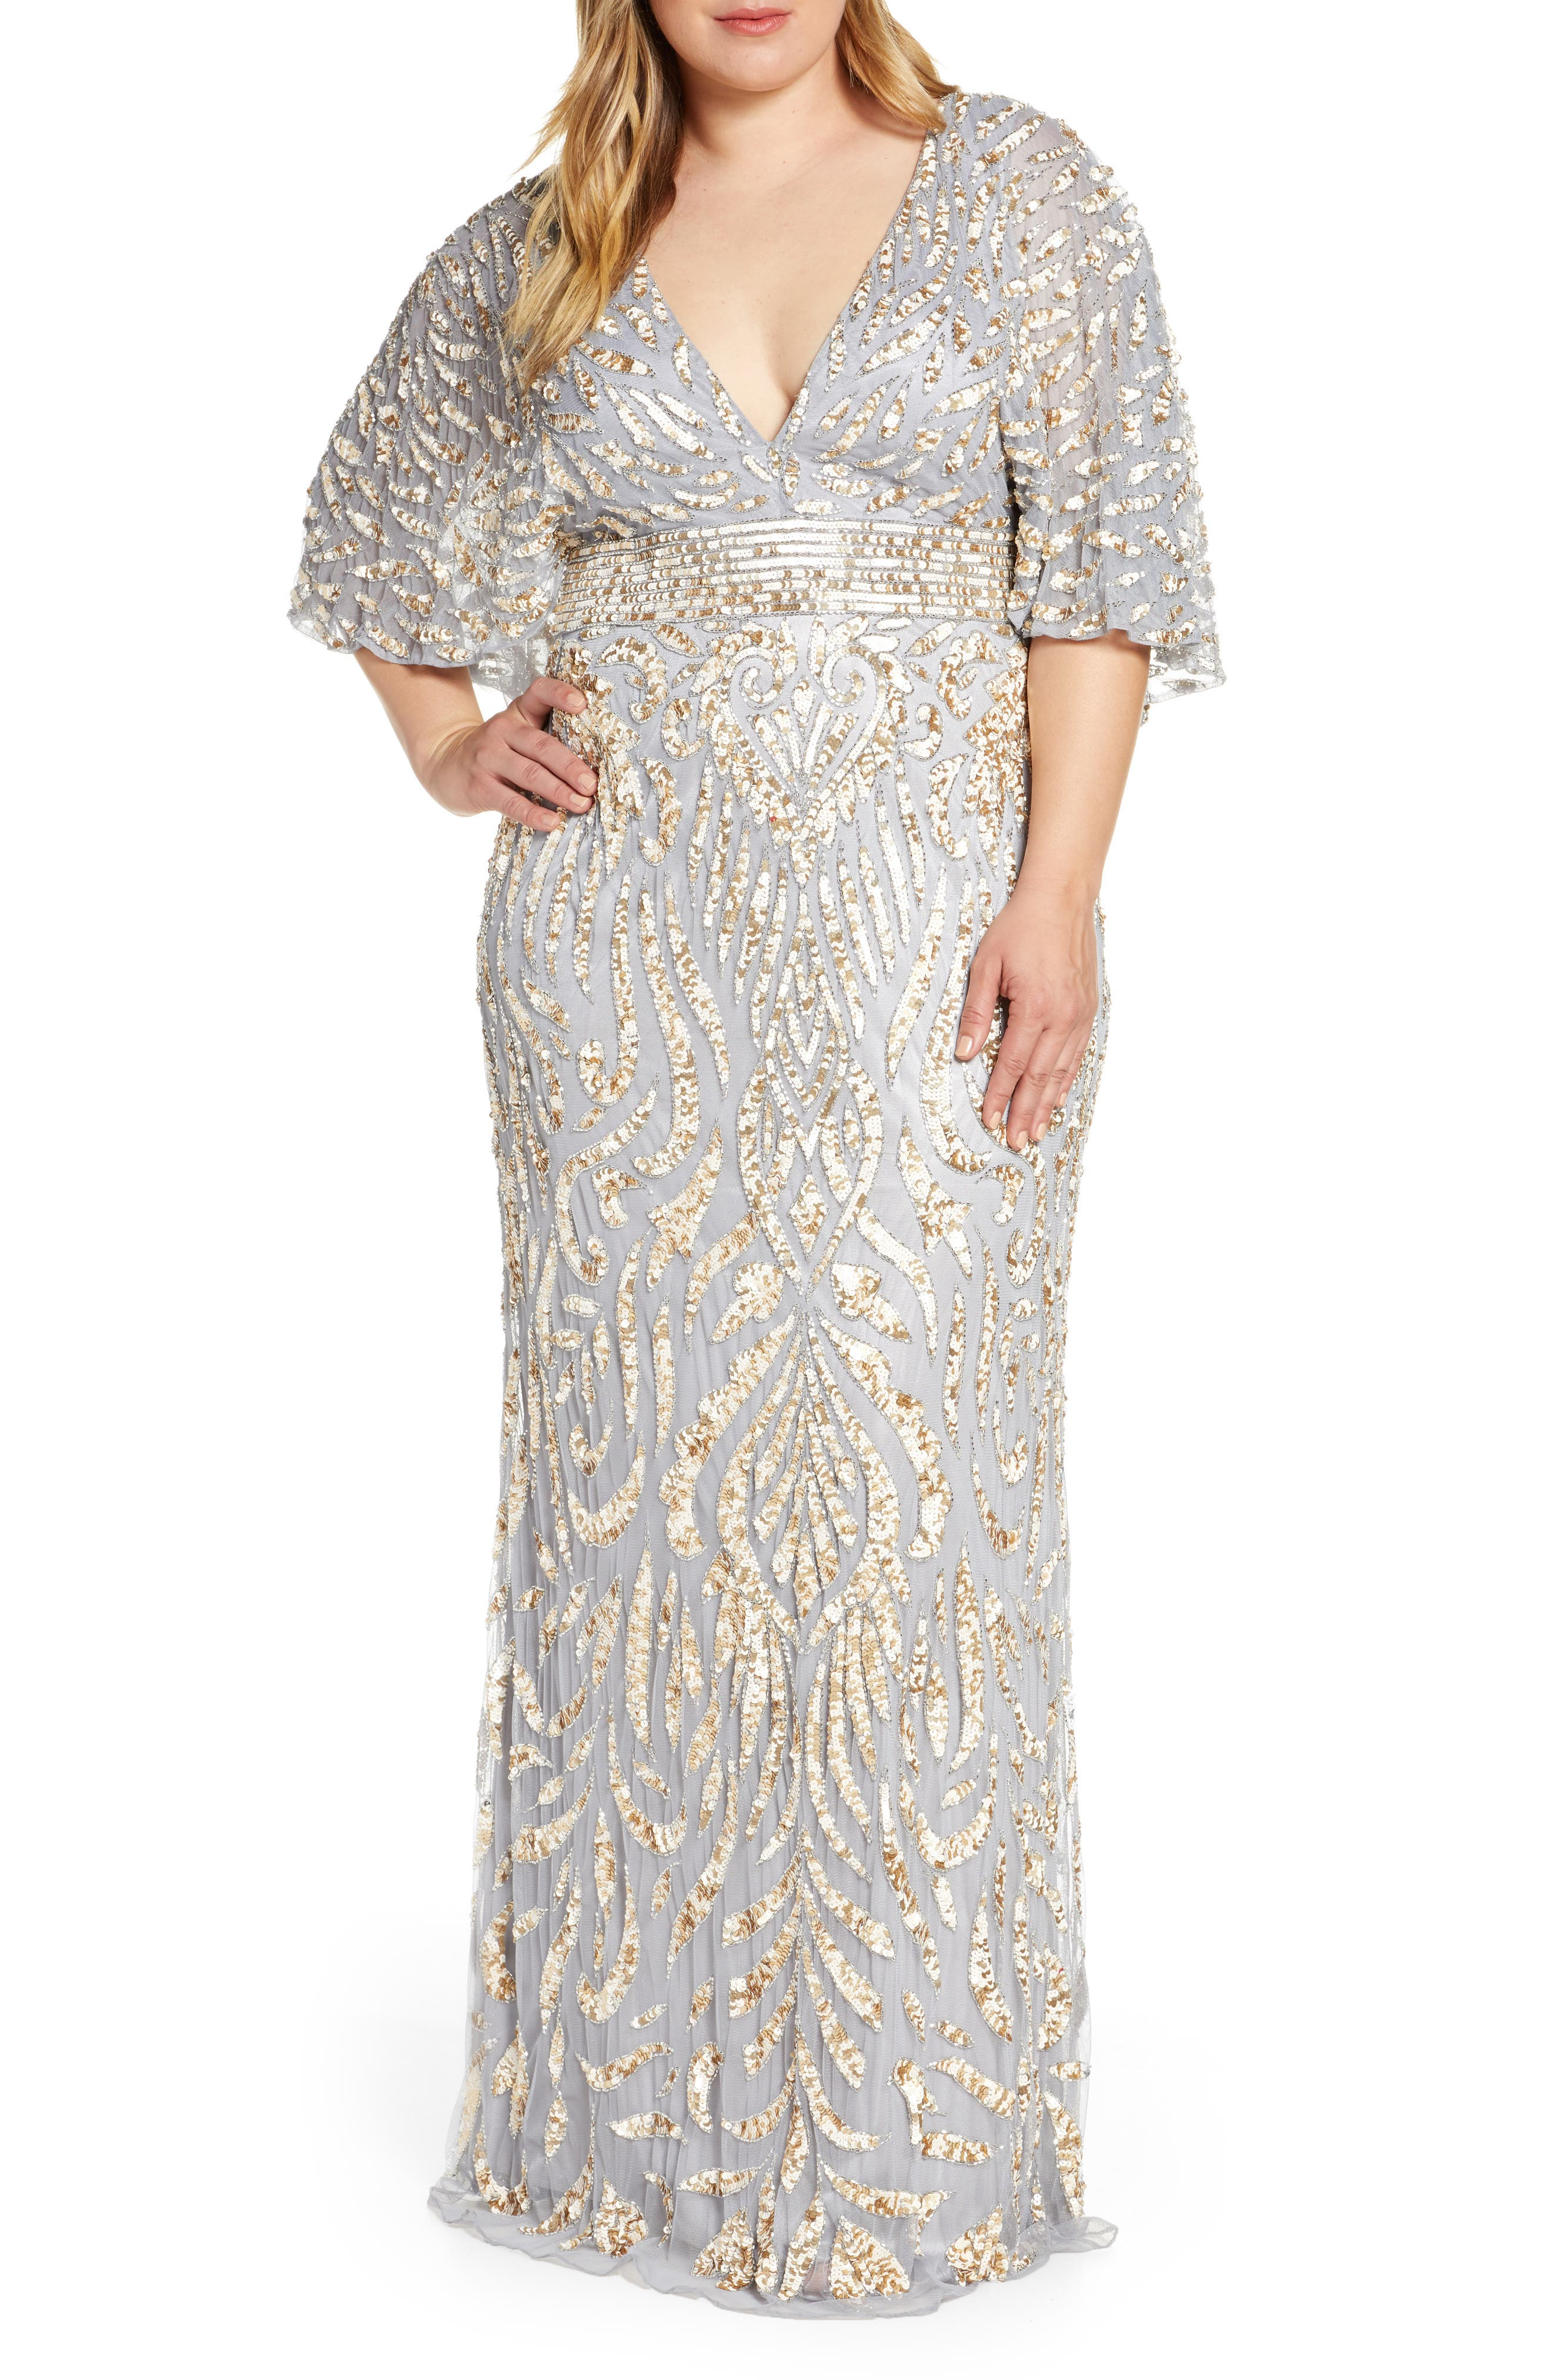 Late July Dresses for Outdoor Wedding,3X Evening Dresses,Evenings Light Pink Designer Dress,Full Size Evening Dresses,Light Pink Plus Size Dresses,Nordstrom Plus Sizes Prom Dresses 2018,Silver Anniversary Dresses Plus Size,Ruched Evening Dress Elegant Lace,Long Grey Sequin Dress,Sleeveless Semi Formal Dresses for Plus Size Women,